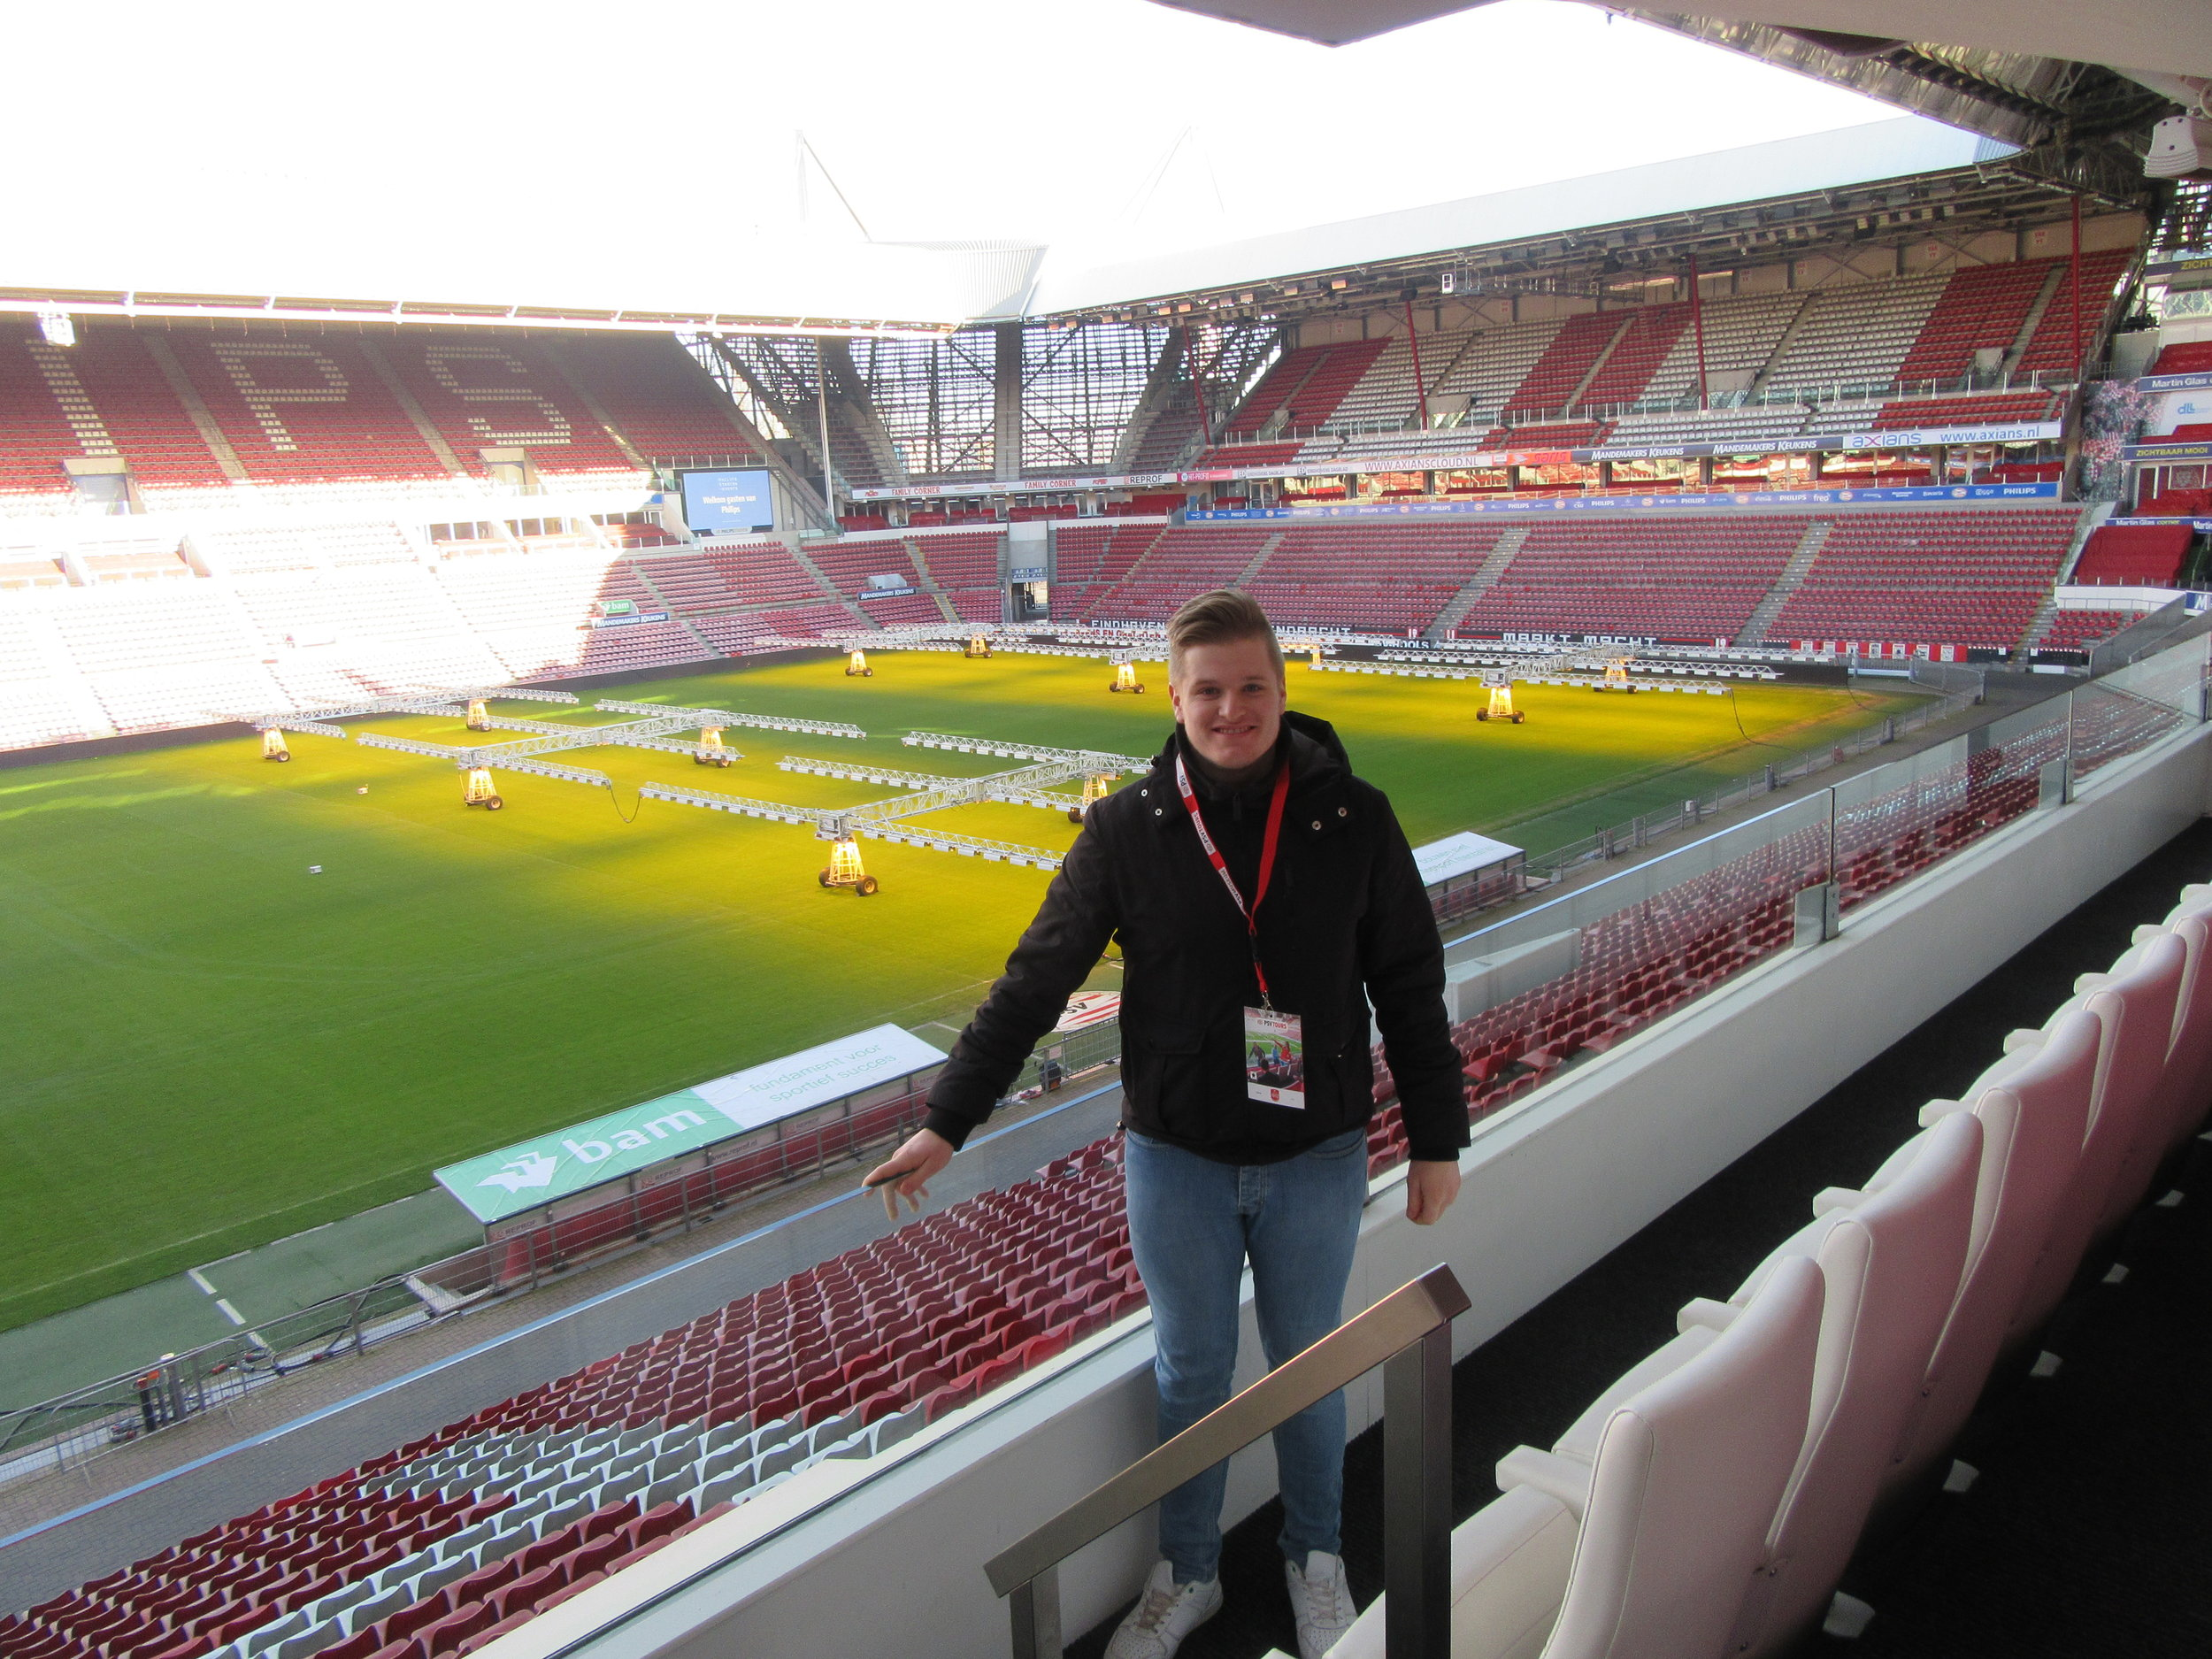 Travelling-Tom-Philips-Stadion-Tour